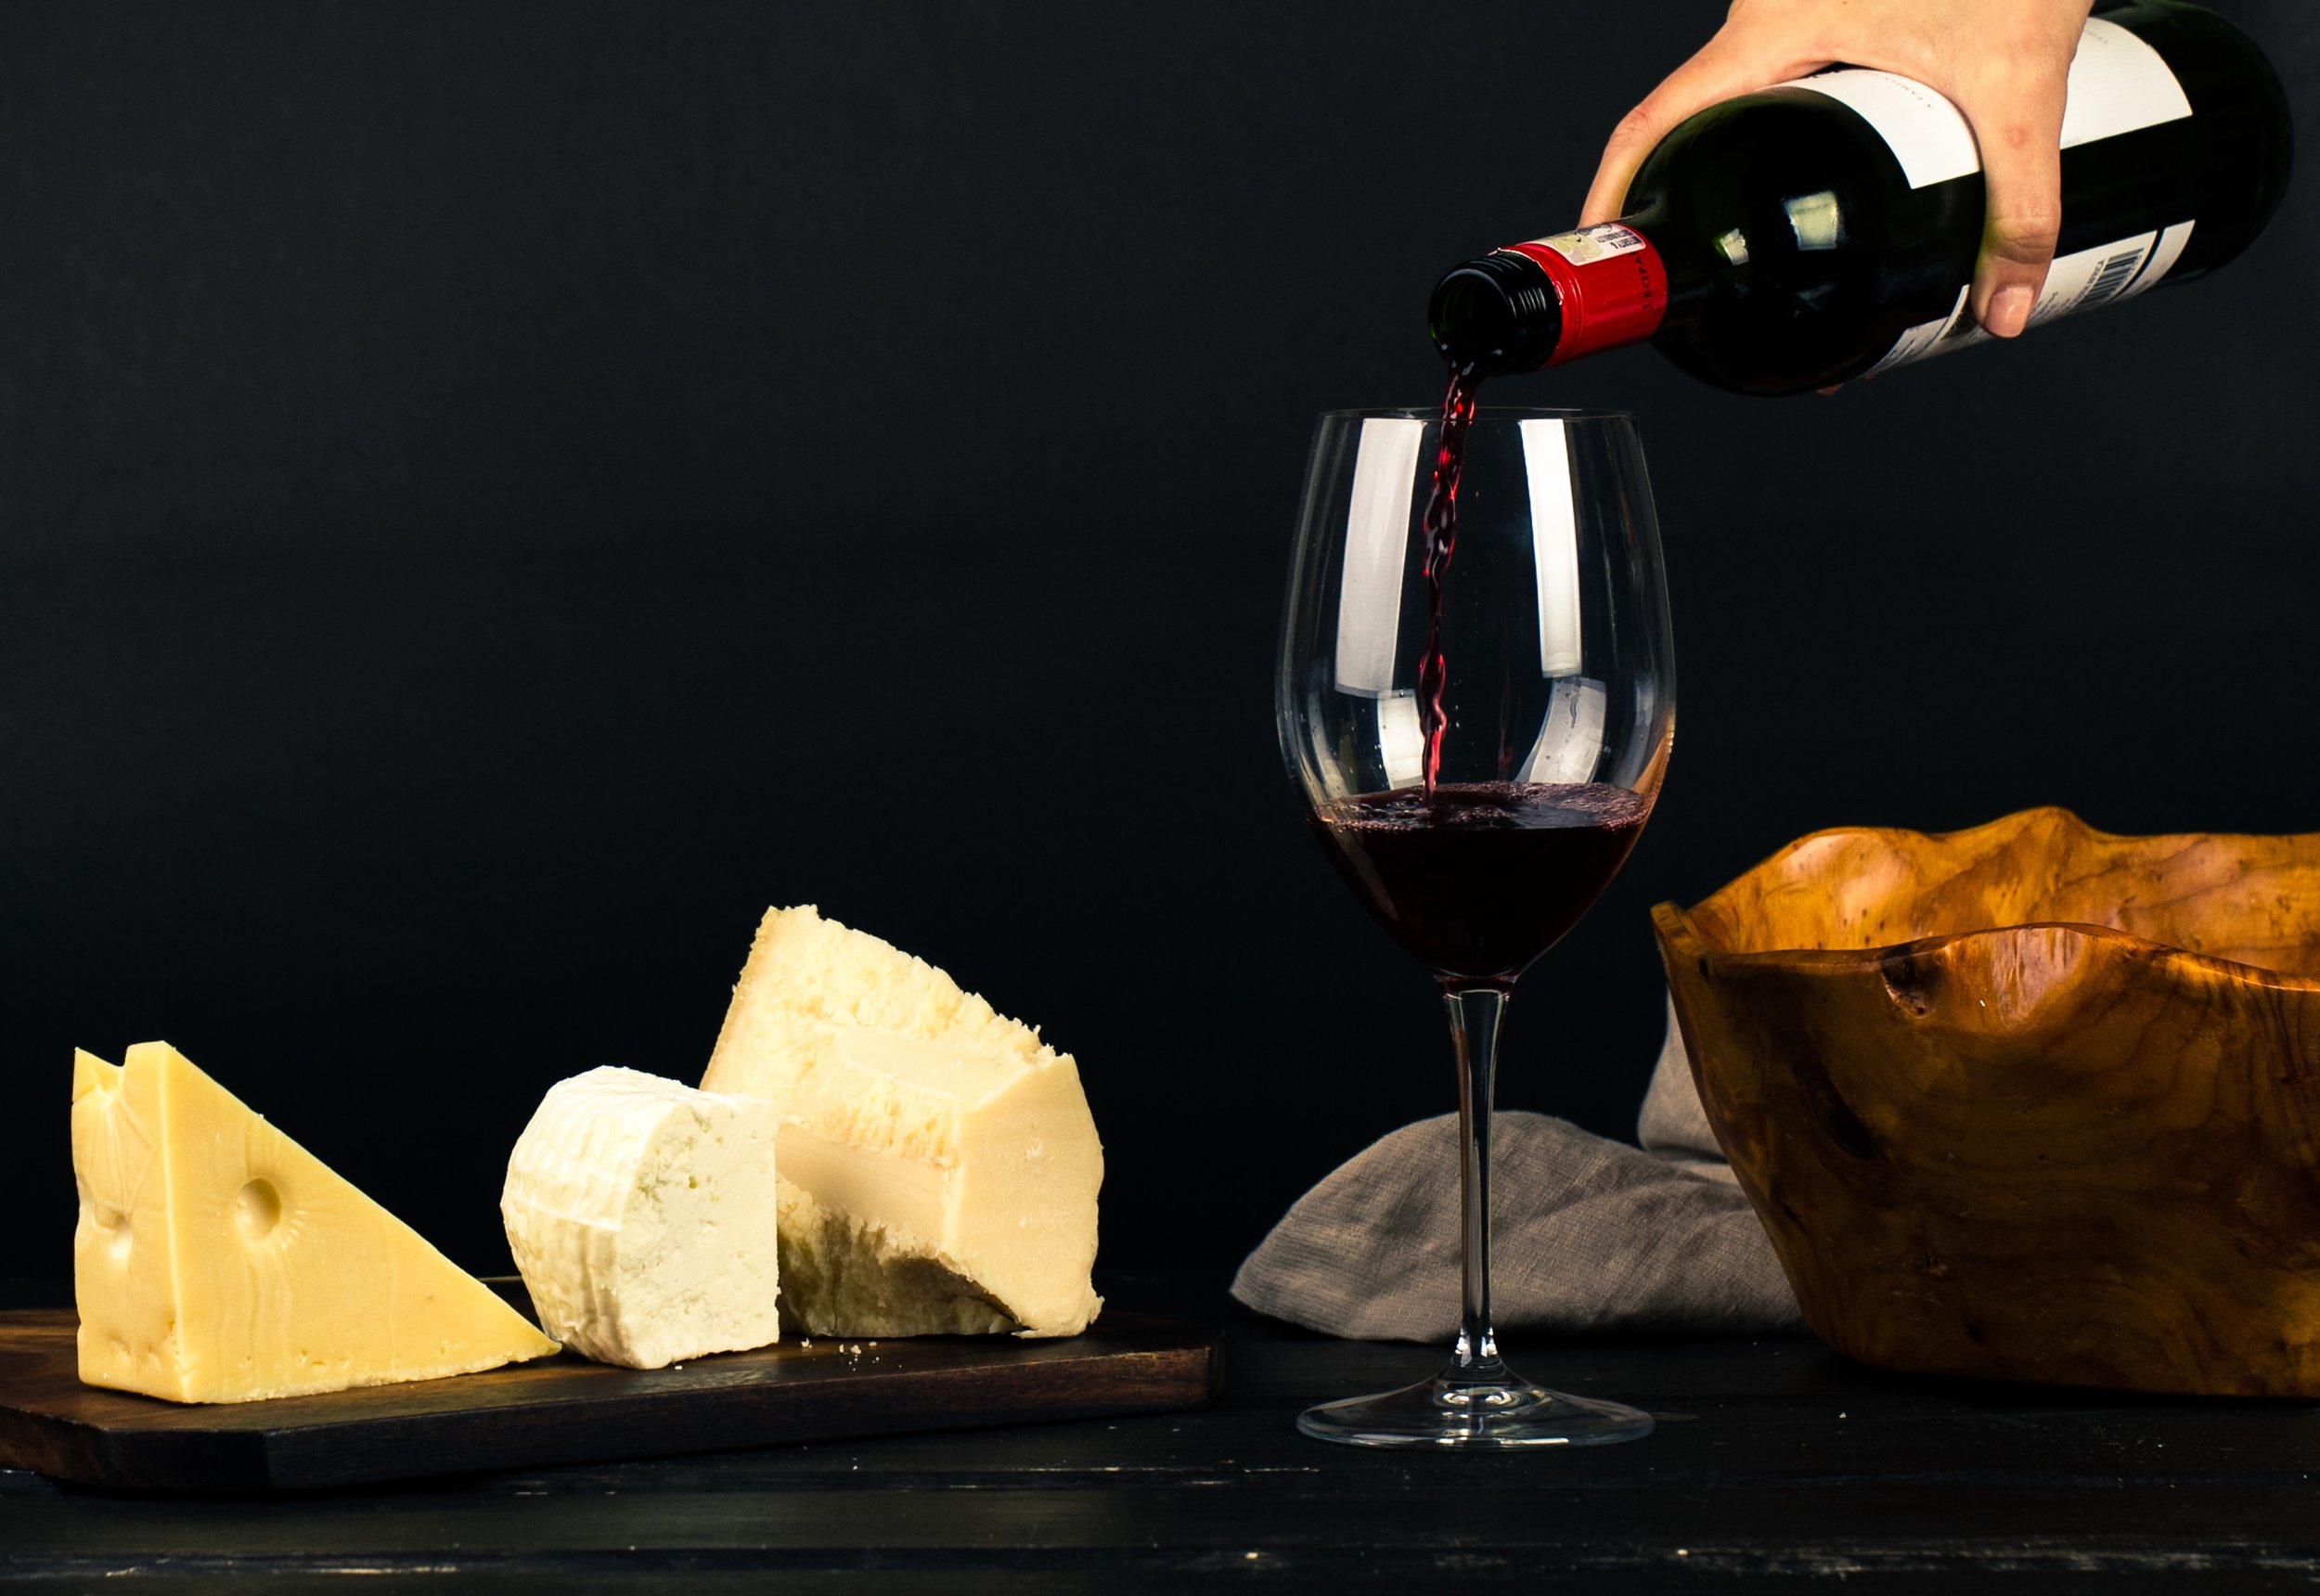 alcohol-cheese-drink-1545529.jpg Photo by Ray Piedra from Pexels.jpg